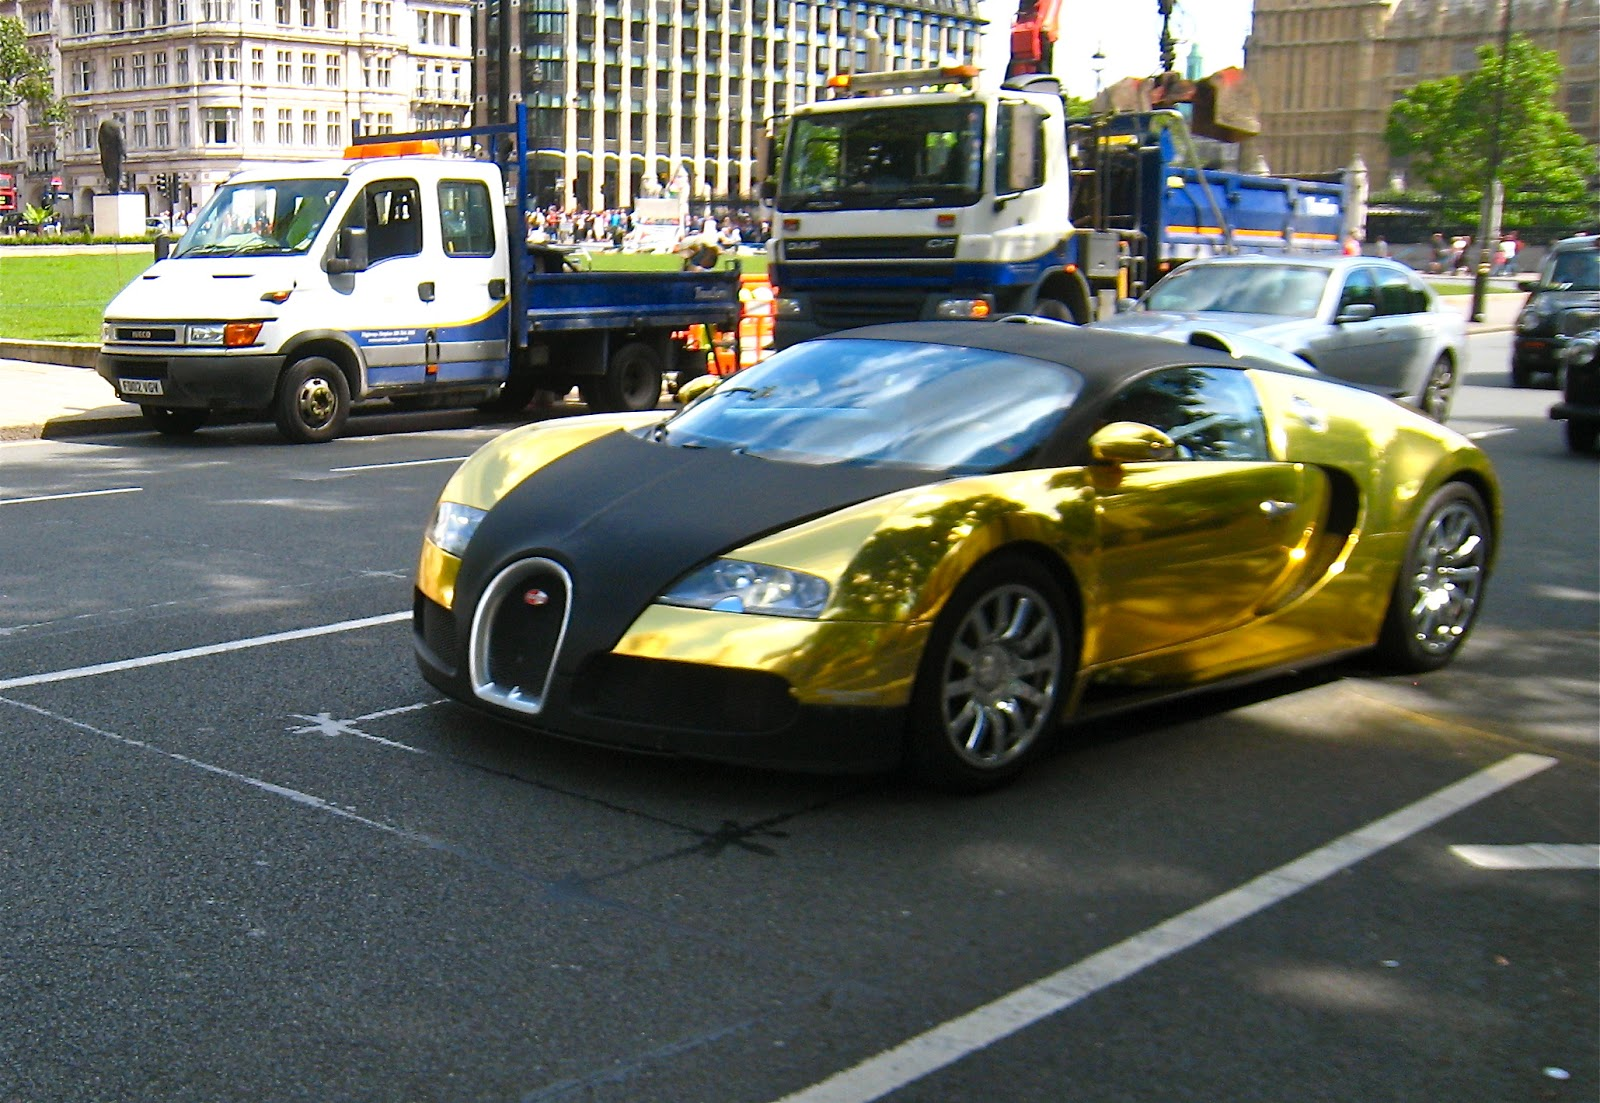 Bugatti Veyron Cars Wallpapers | CARS WALLPAPERS COLLECTIONS